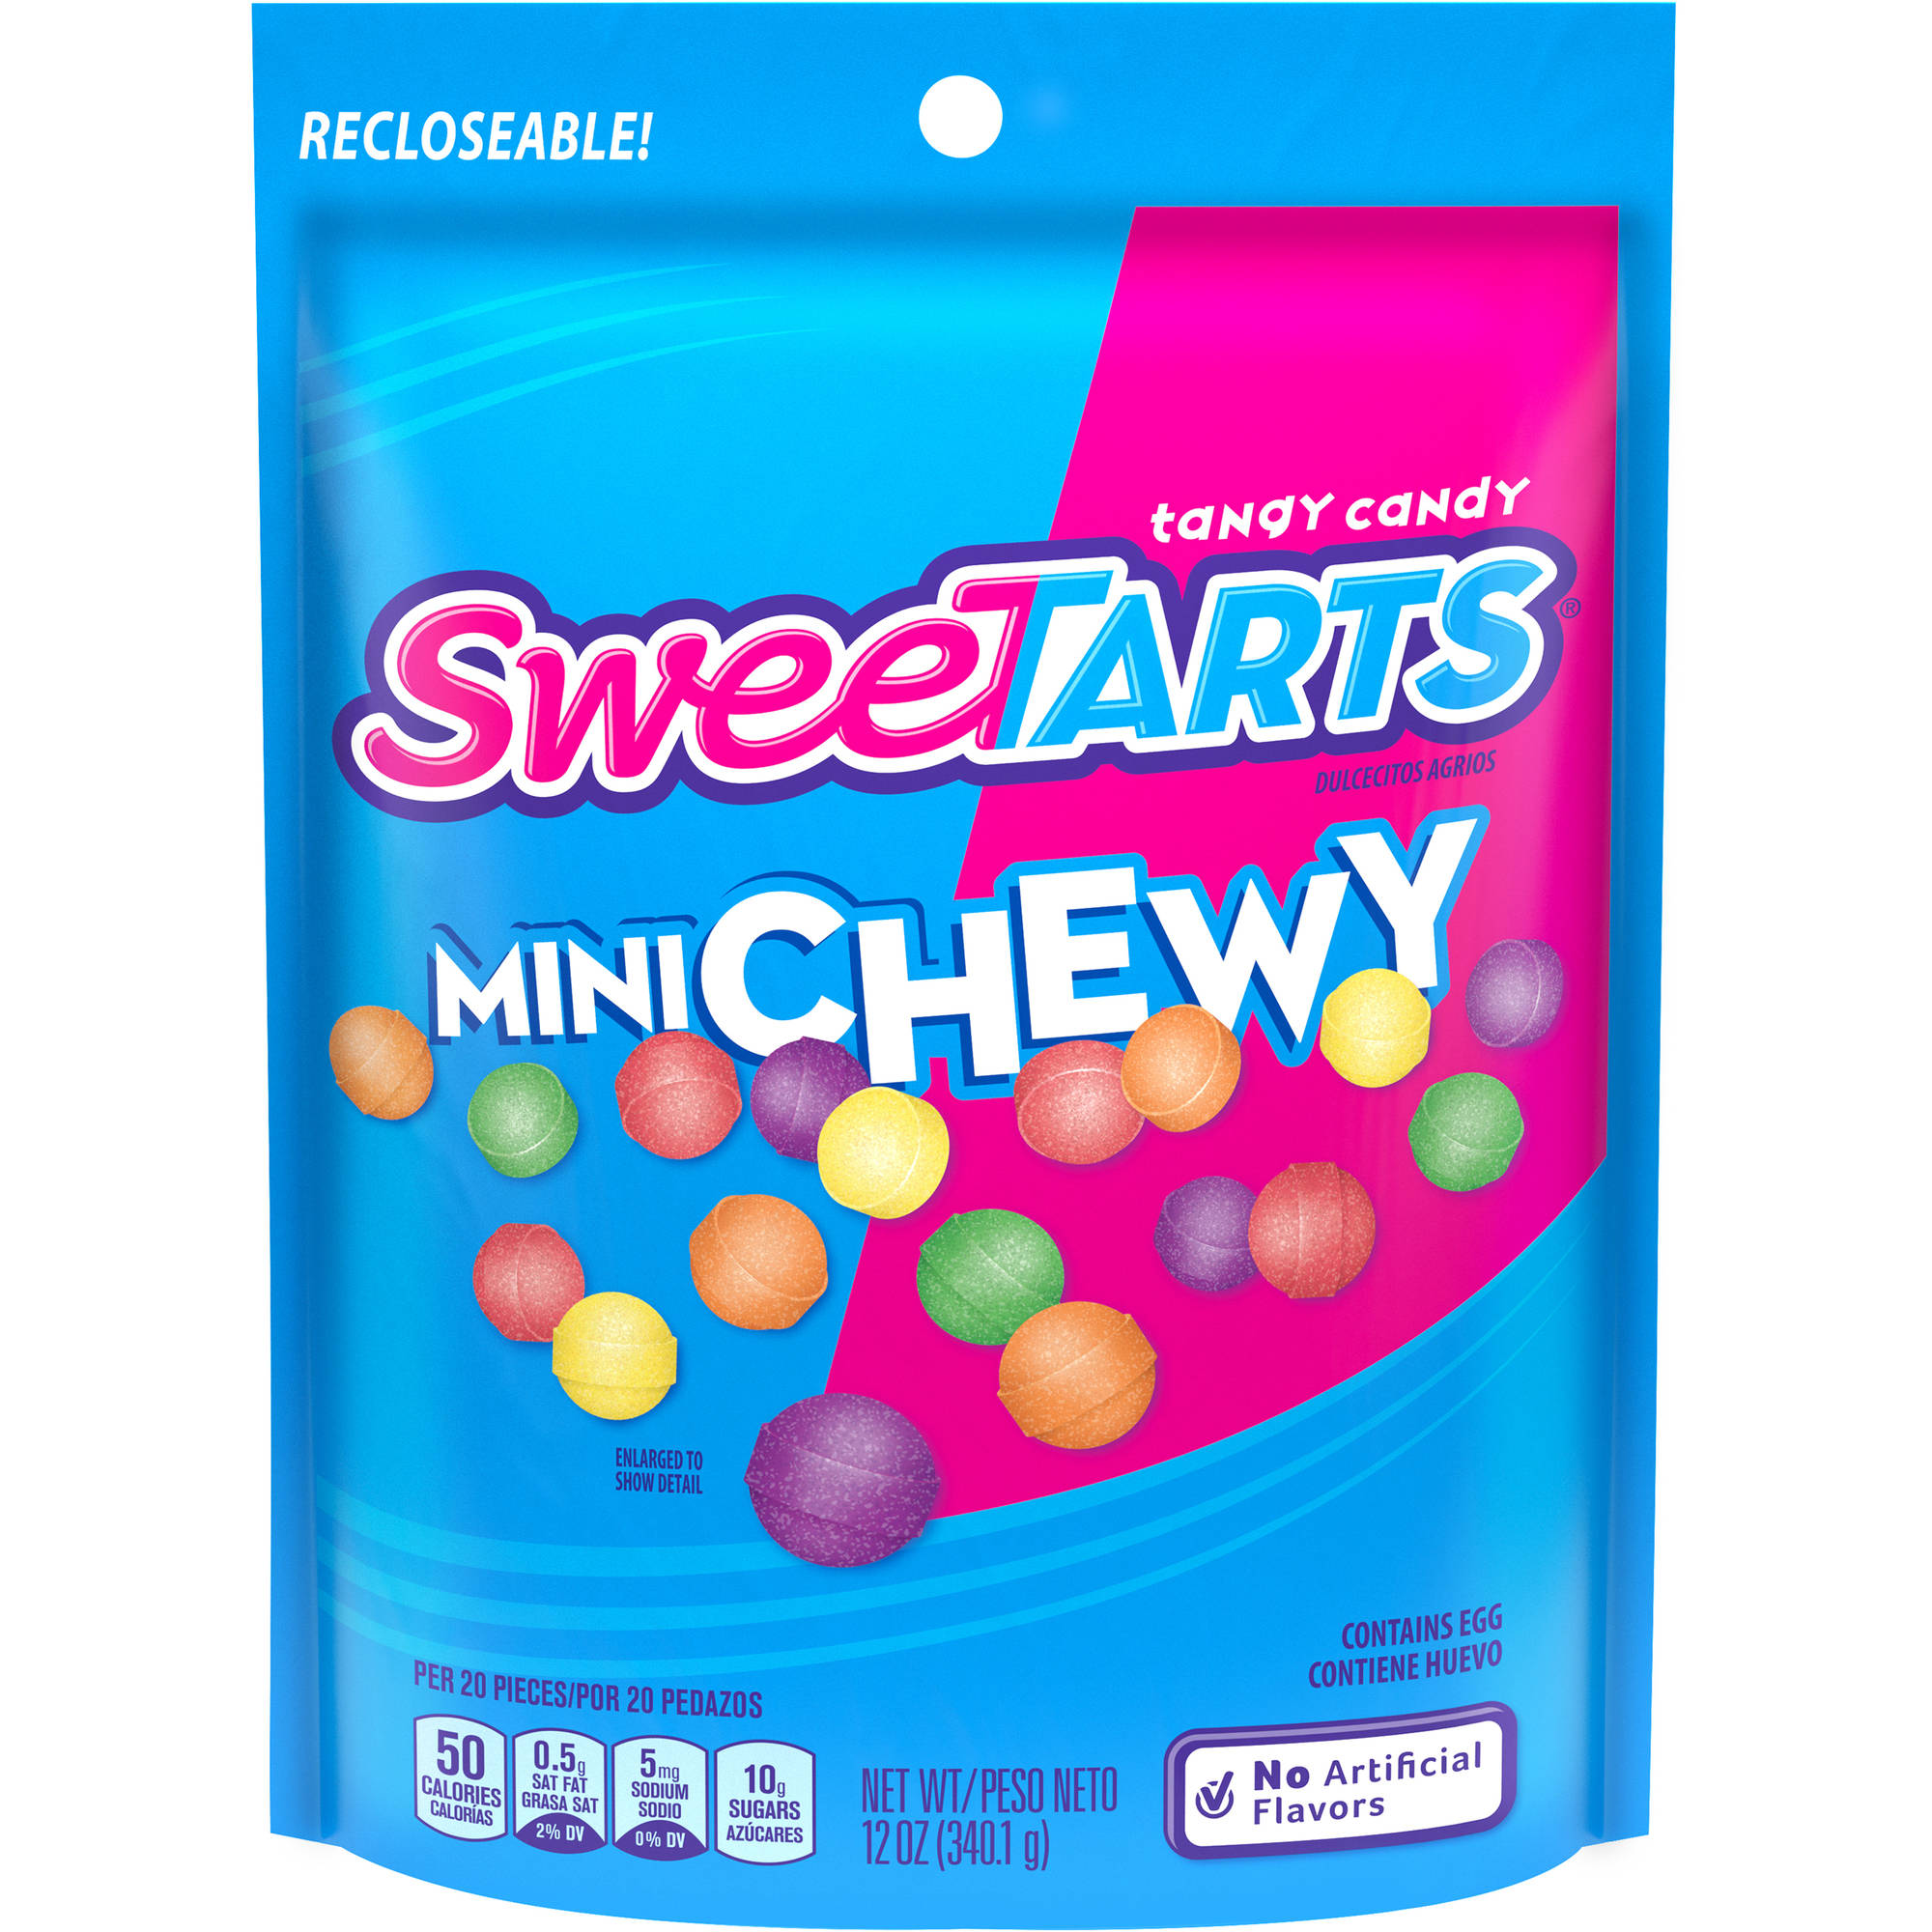 SweeTarts Mini Chewy Candy, 12 oz